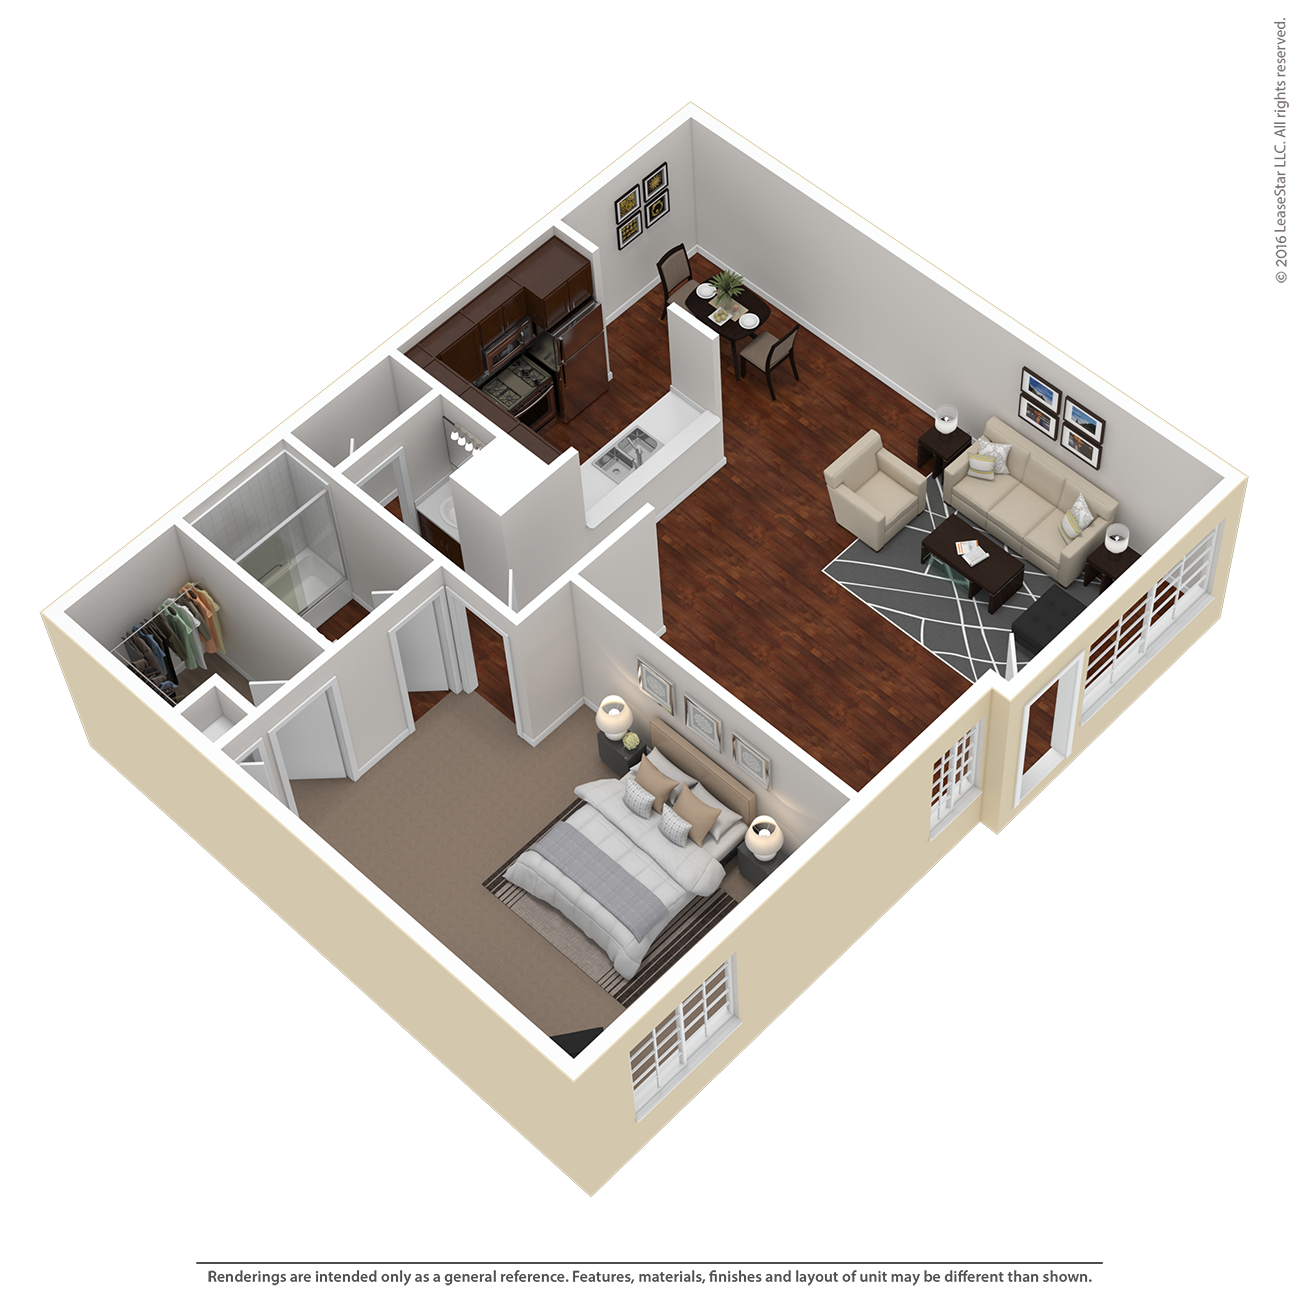 1 Bed 1 Bath Plan B Floor Plan 1